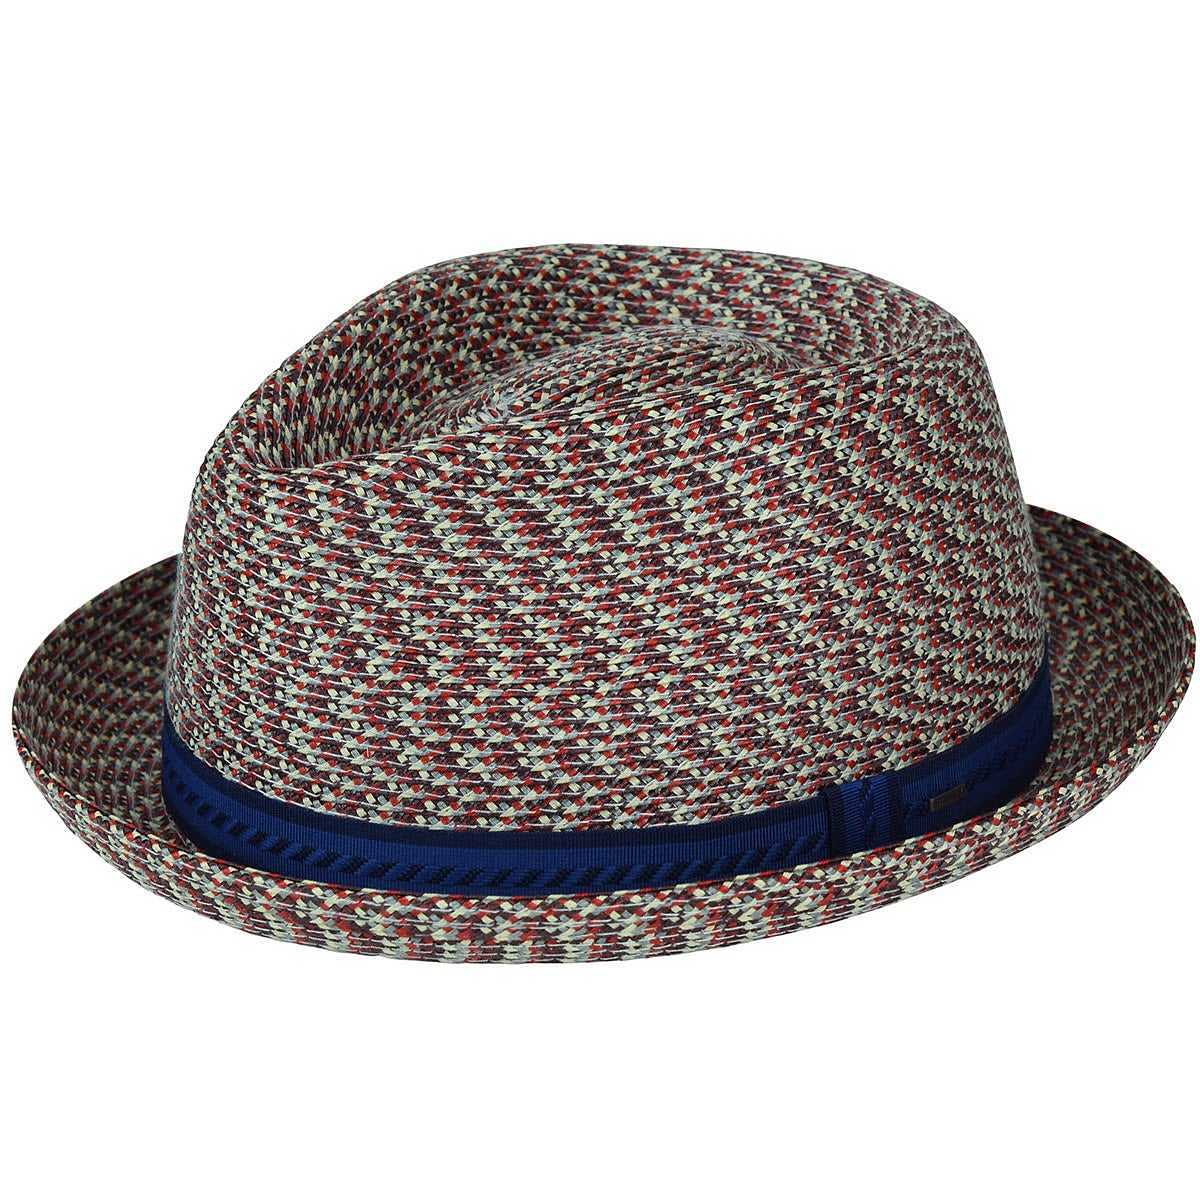 Bailey Of Hollywood Mannes Braided Trilby Cranberry Multi USA - GOOFASH -